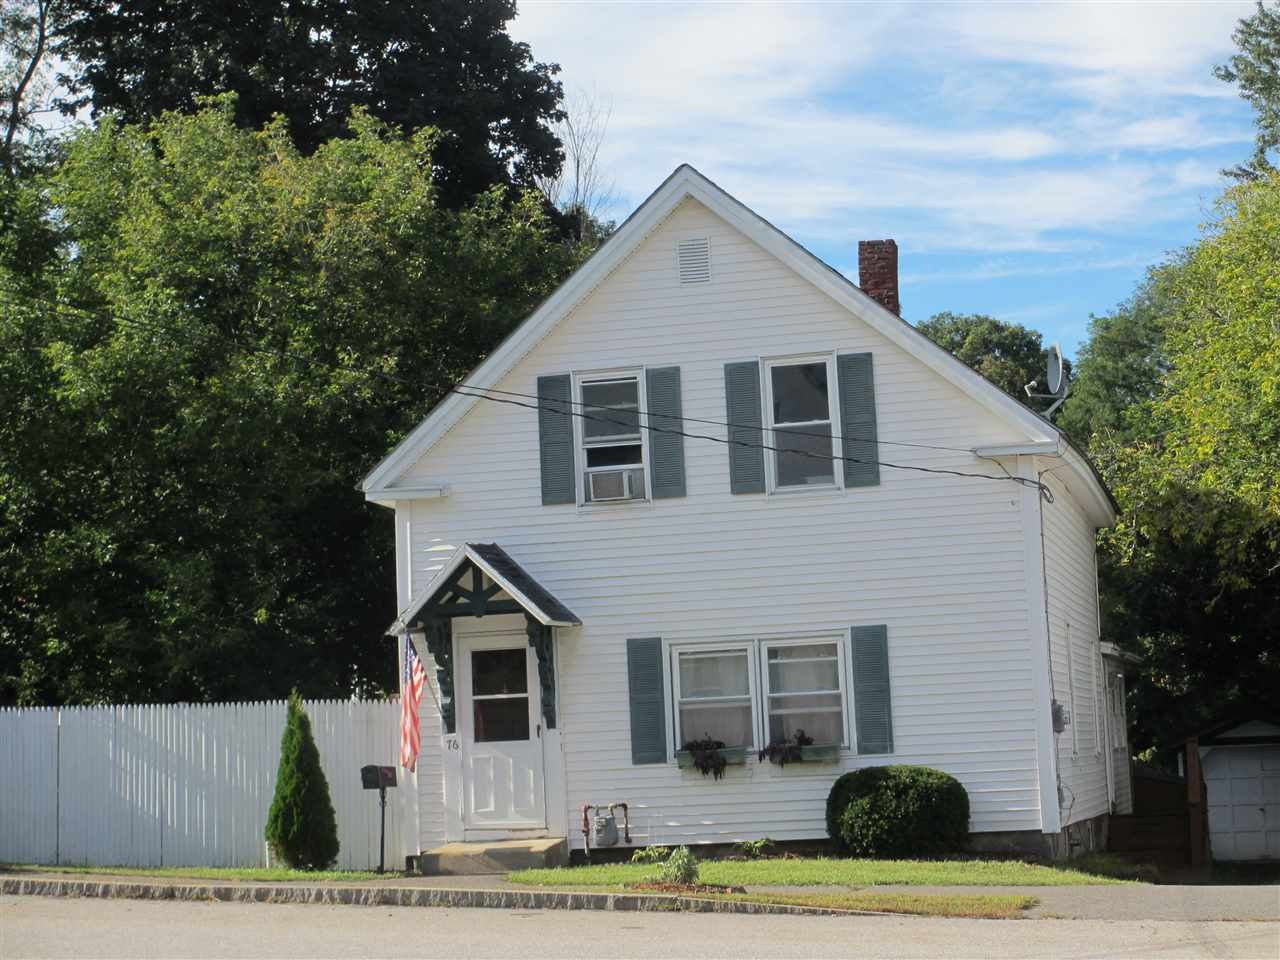 Photo of 76 FRANKLIN Street Concord NH 03301-76